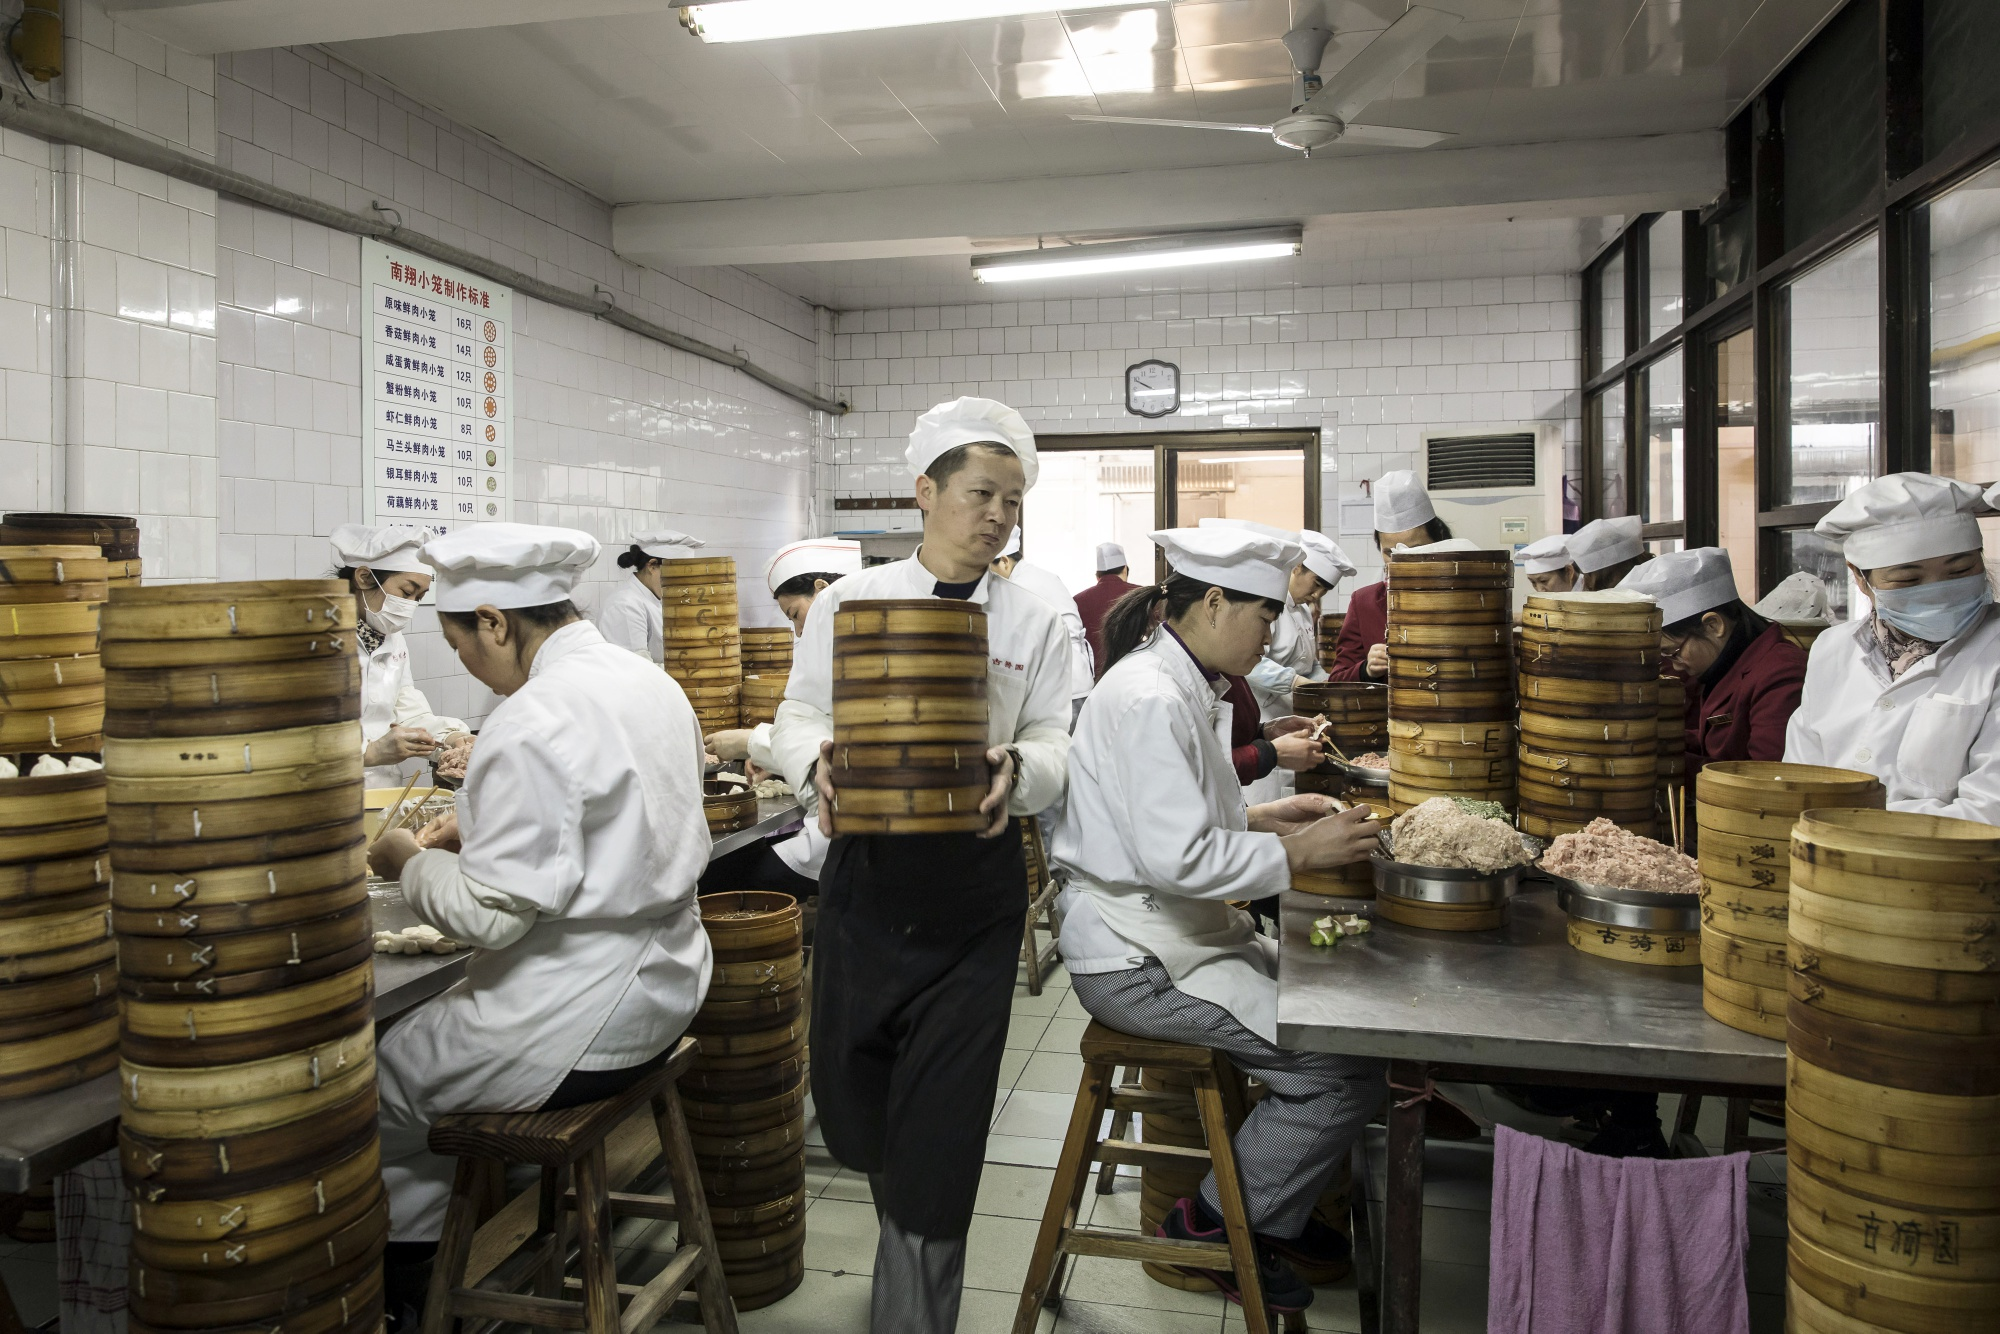 Business Of Renting Kitchen Space Heats Up In China Bloomberg